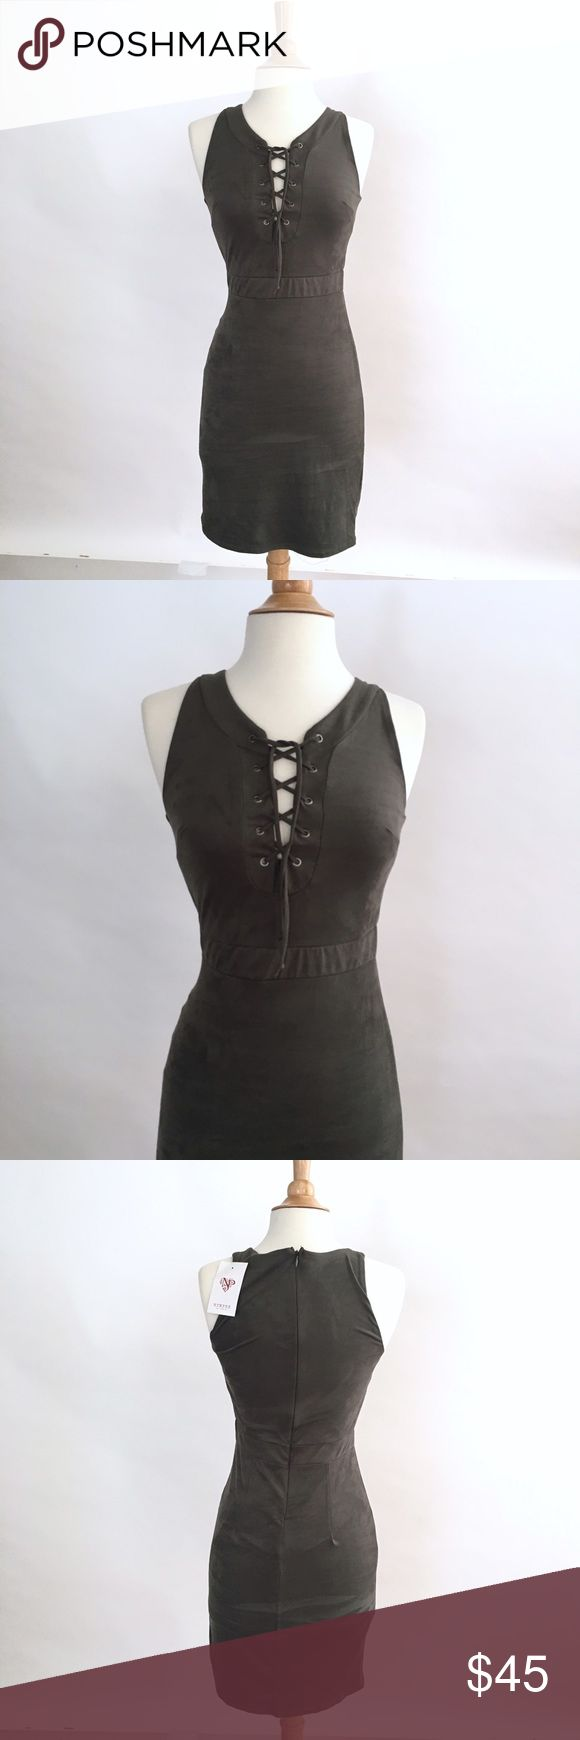 NYMPHE Lace-Up Dress Sleeveless  Hidden zipper in back  Lace up chest  Straight hem  Lined  Grey with tones of green  90% Polyester 10% Spandex  Size: Small  Length: 35in  Bust: 13.5 (Armpit to Armpit)  Hips: 15in    Condition: No stains, wear or tear.   ☑️No Pets  ☑️Non-Smoking home  ☑️Every item steamed throughly before shipped!  💌 Ships from Santa Monica, CA  🗝Follow me on Instagram! @koukil1908 ask to have a video of the item ✌️ Nymphe Dresses